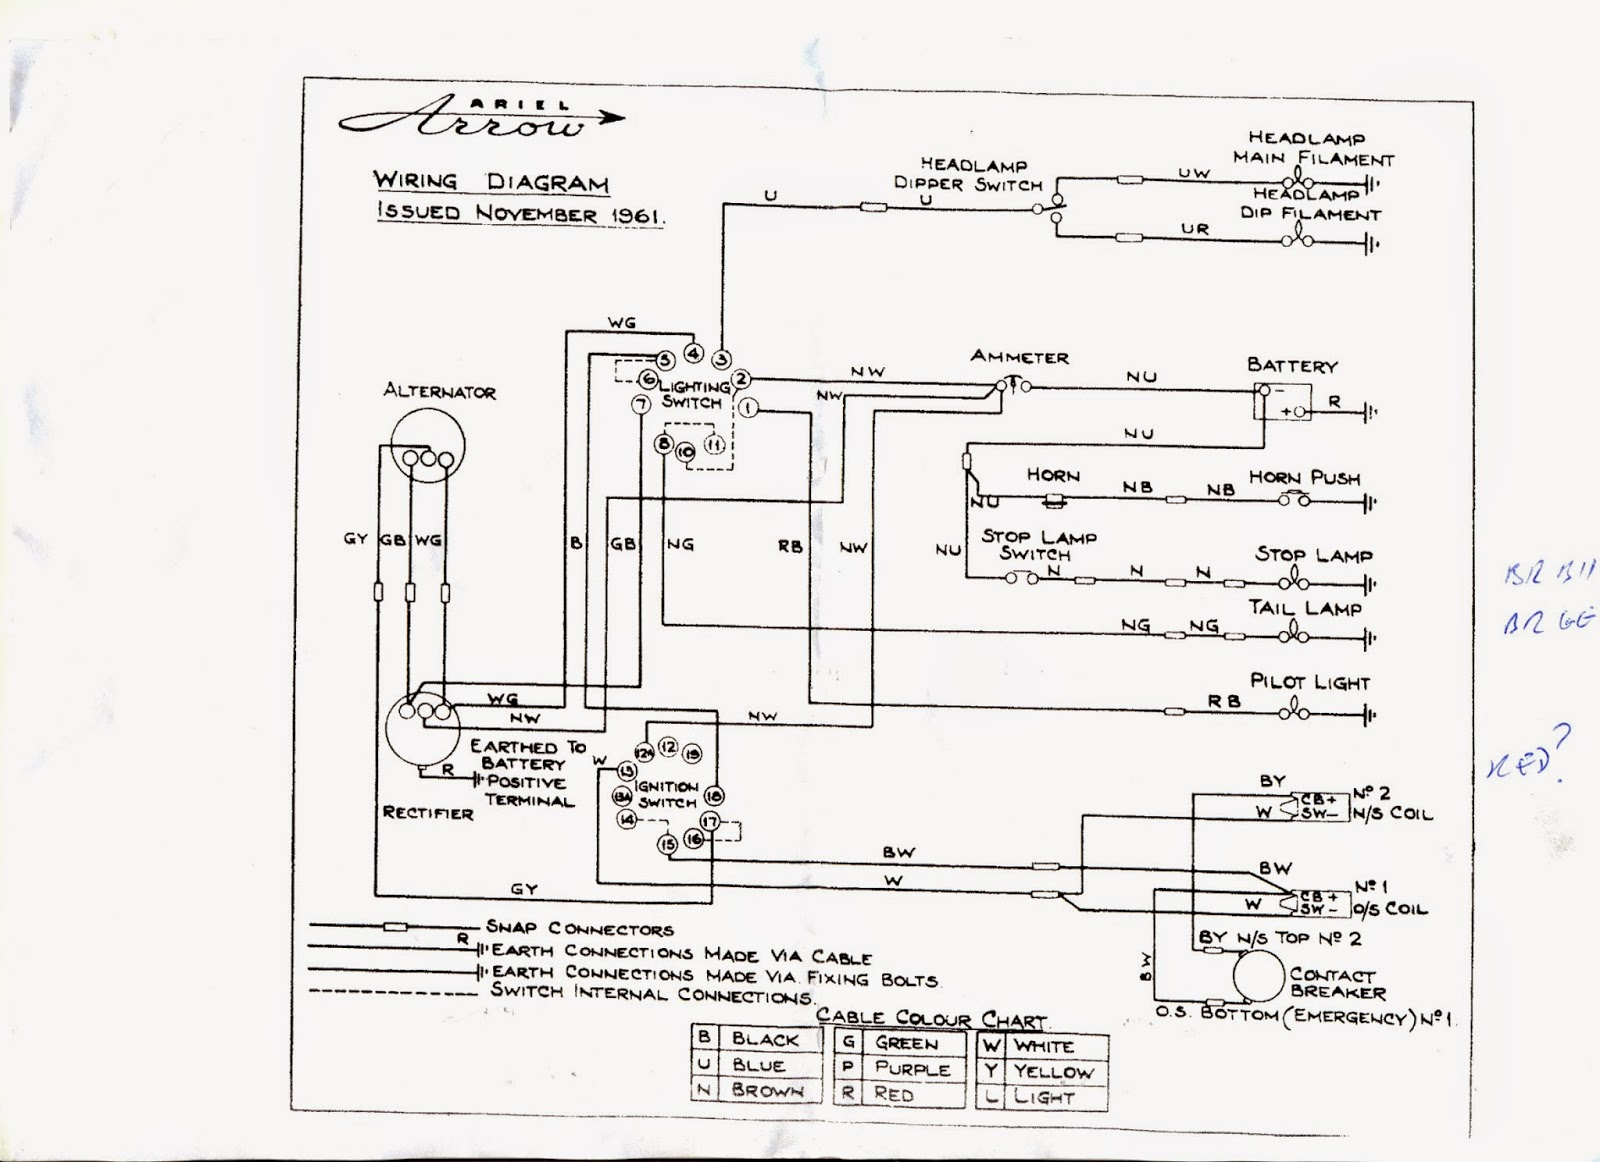 Bsa road rocket wiring diagram all kind of wiring diagrams classic motorbikes february 2015 rh 60sclassicmotorbikes blogspot com bsa a50 wiring diagram bsa c15 wiring diagram cheapraybanclubmaster Image collections